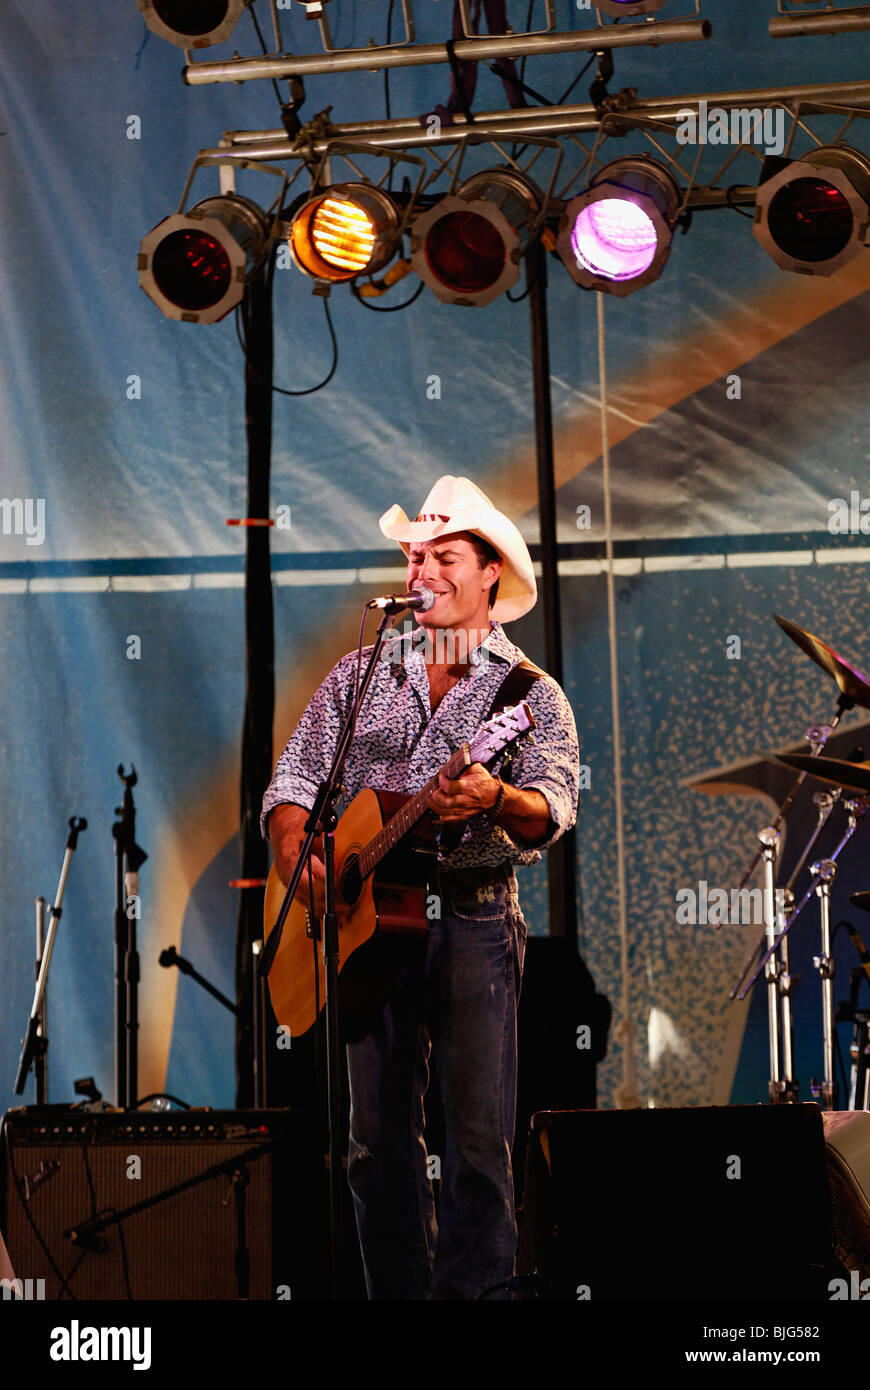 Country Singer Performing at the 2009 Kentucky State Fair in Louisville, Kentucky - Stock Image